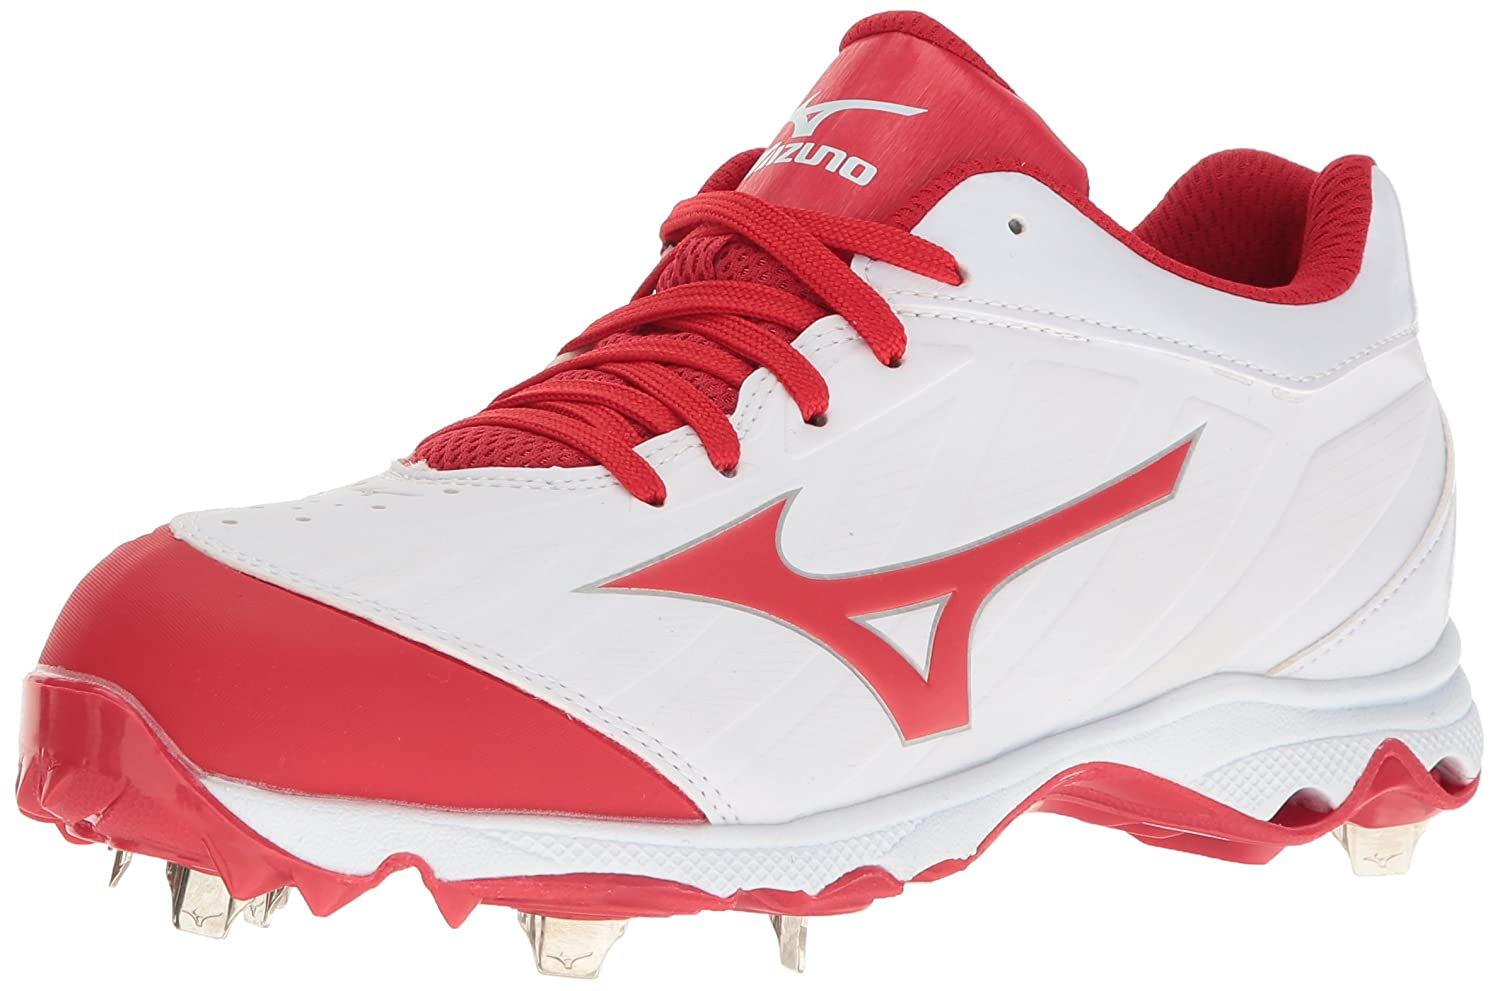 Mizuno Womens 9-Spike Advanced Sweep 3 Low Top Lace Up Baseball Shoes B01M6WOTMH 6.5 C/D US|ホワイト-レッド ホワイト-レッド 6.5 C/D US